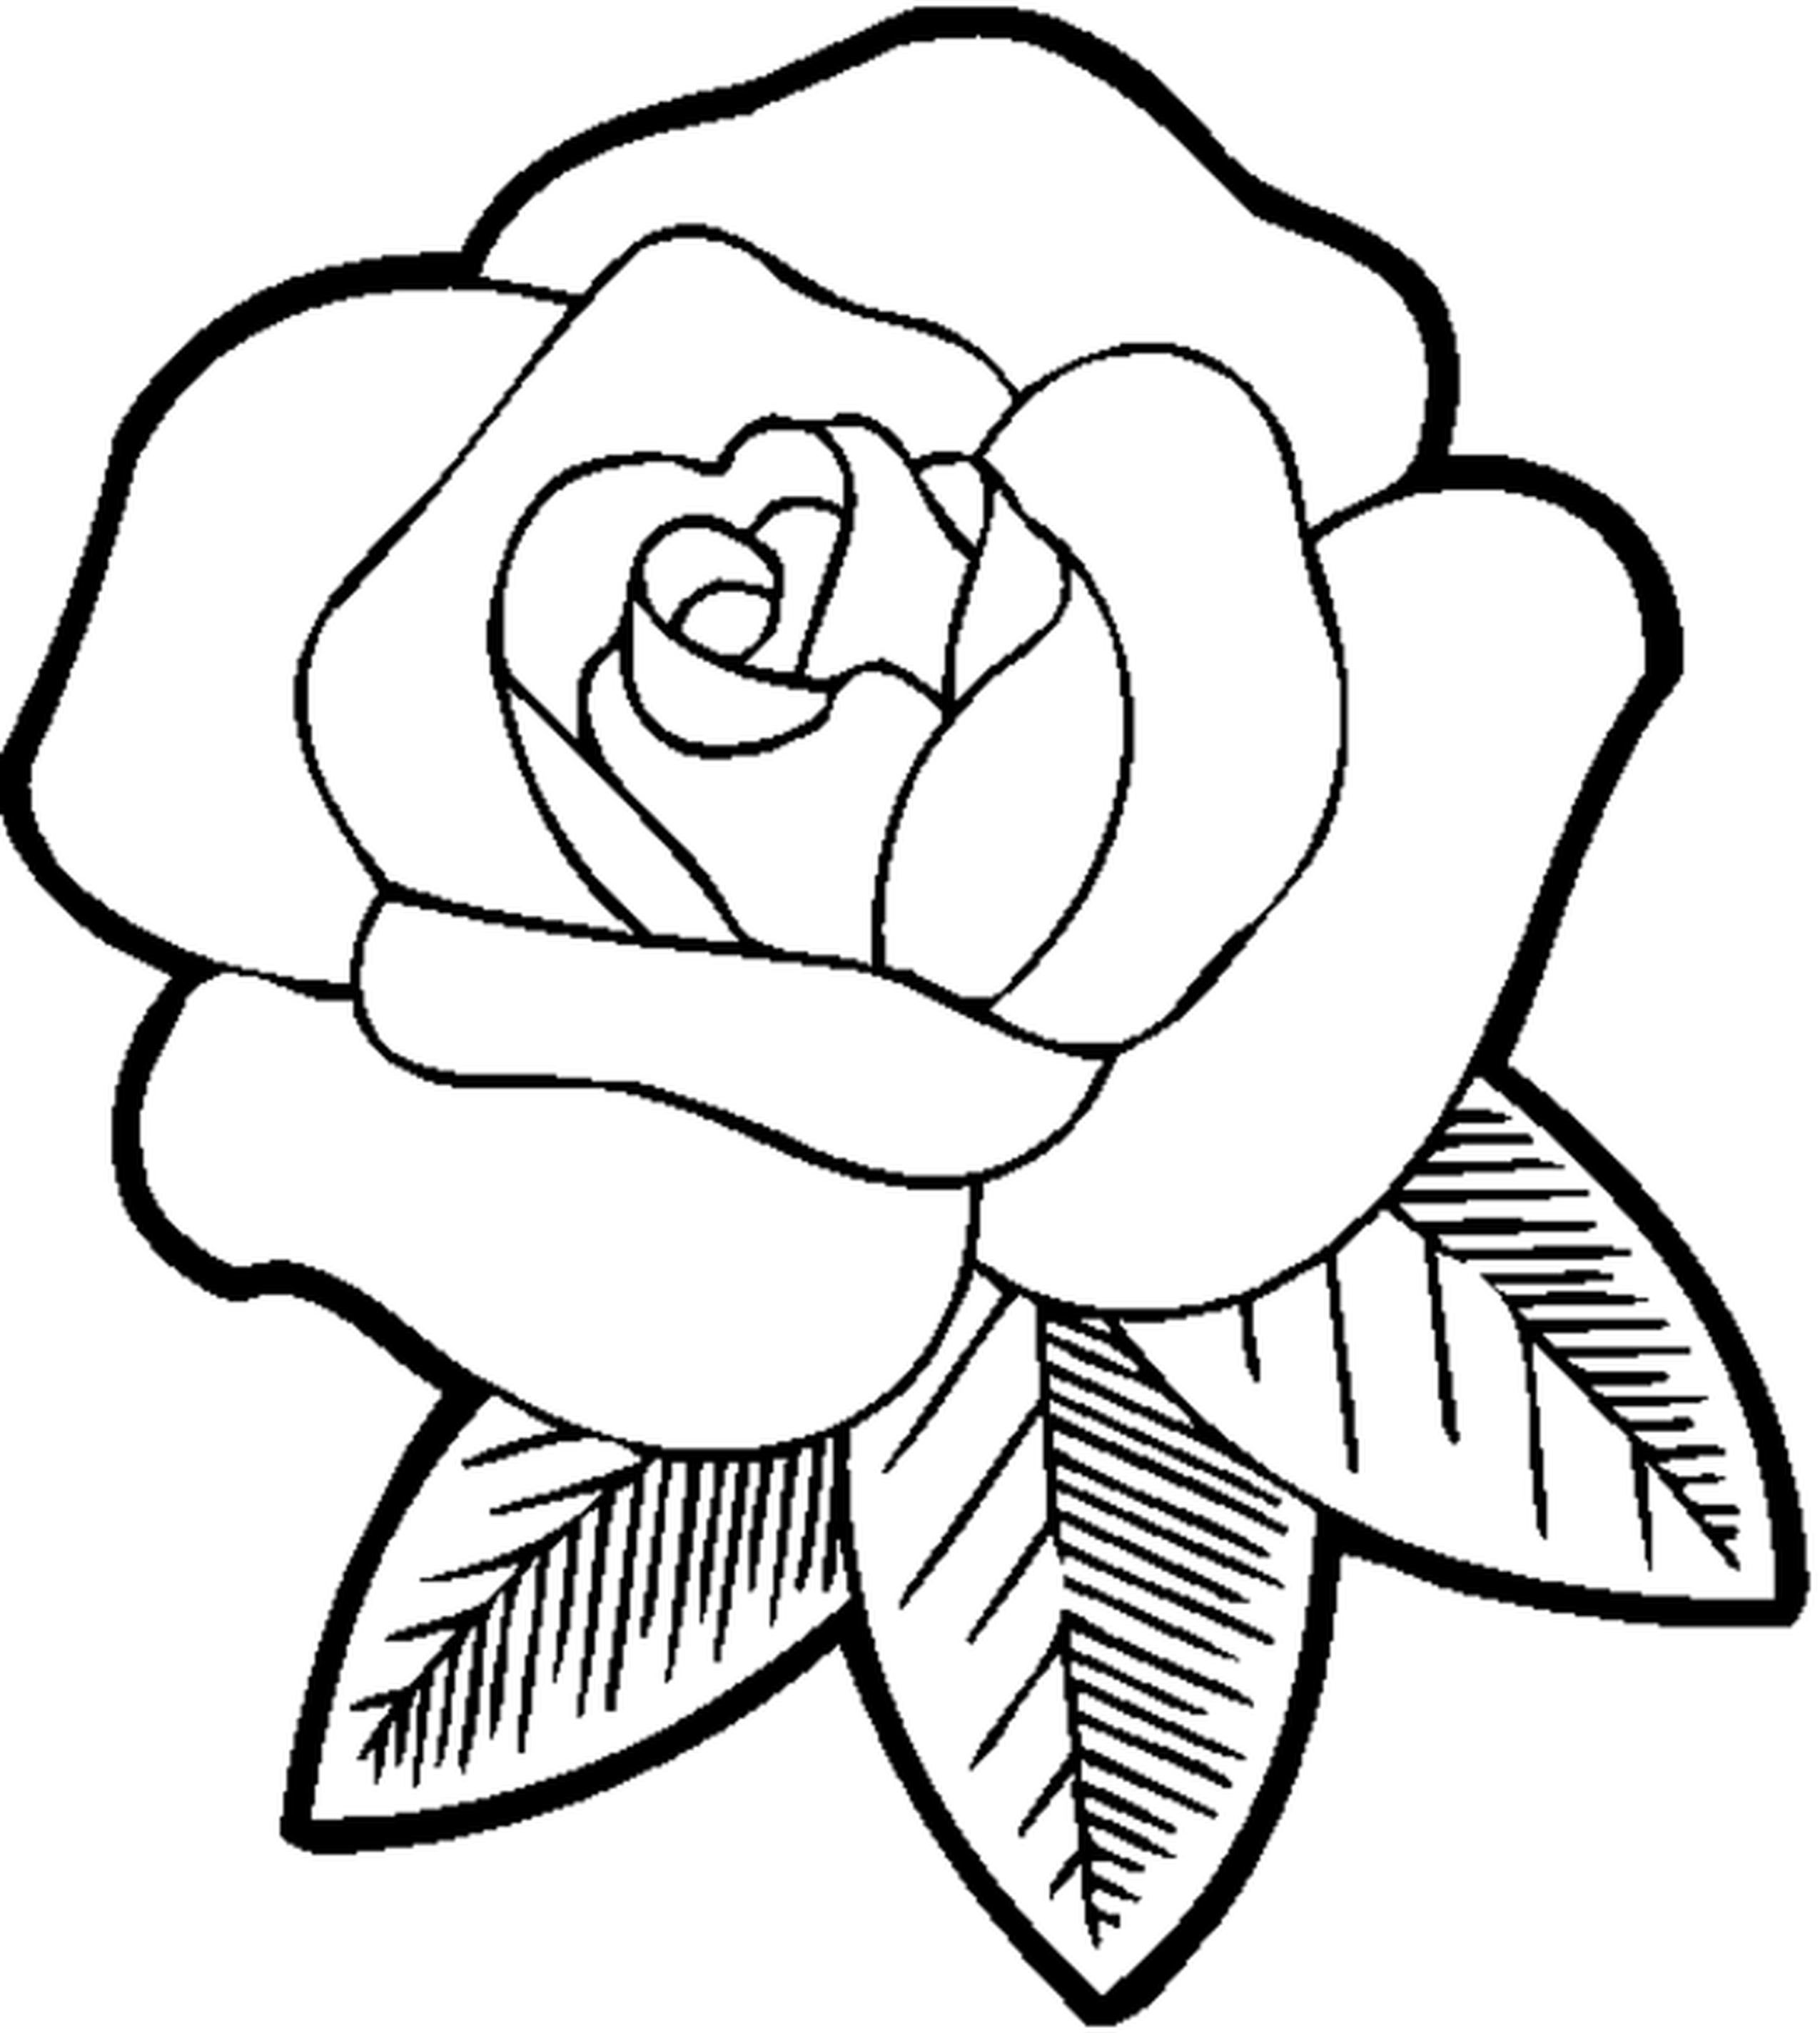 Uncategorized Easy Flower Coloring Pages easy flower coloring pages home simple mandala 82 printable gallery for easy